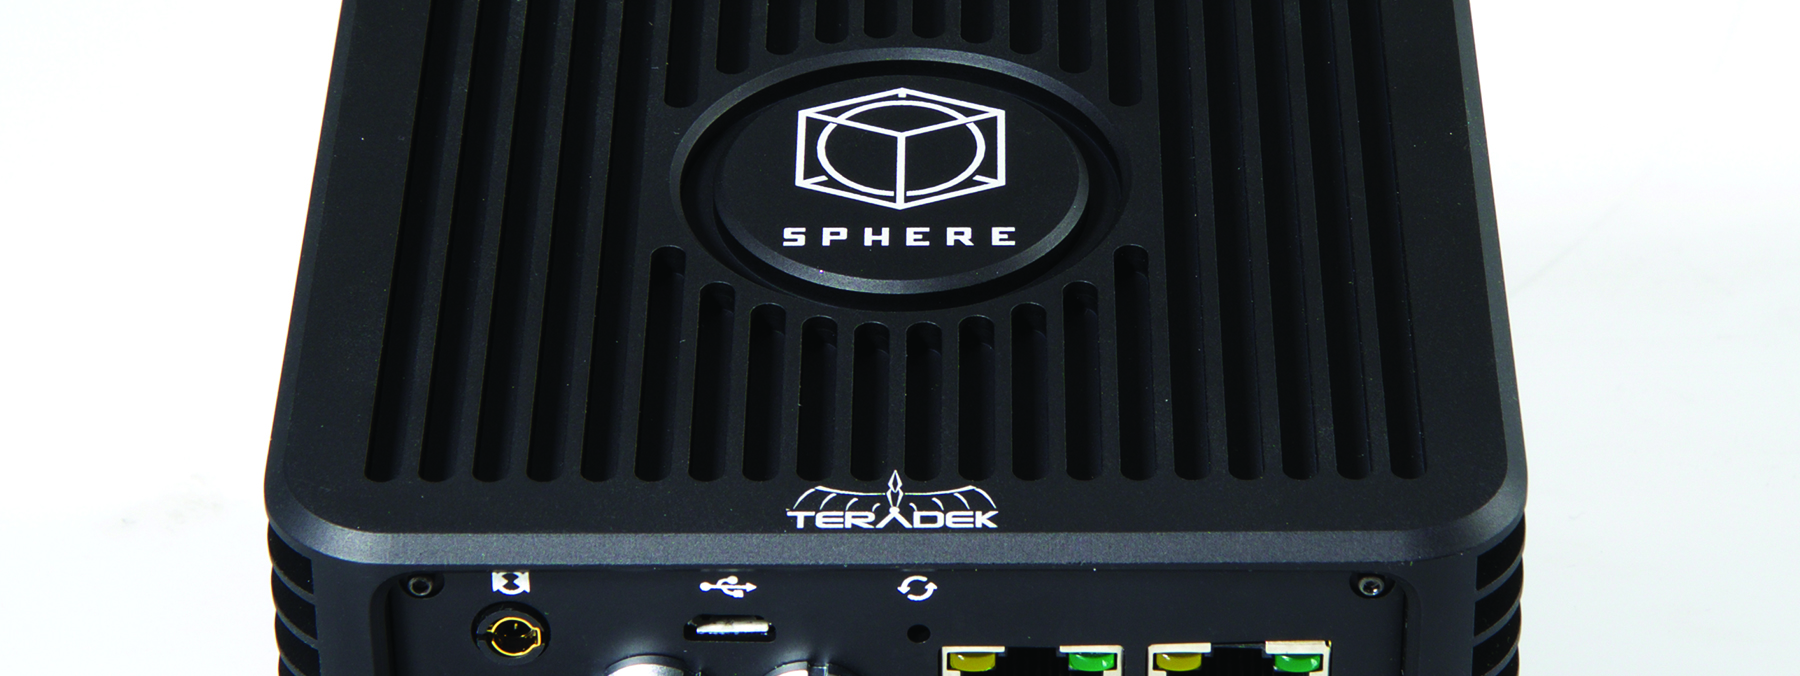 Feature Teradek Sphere Sdi 1703